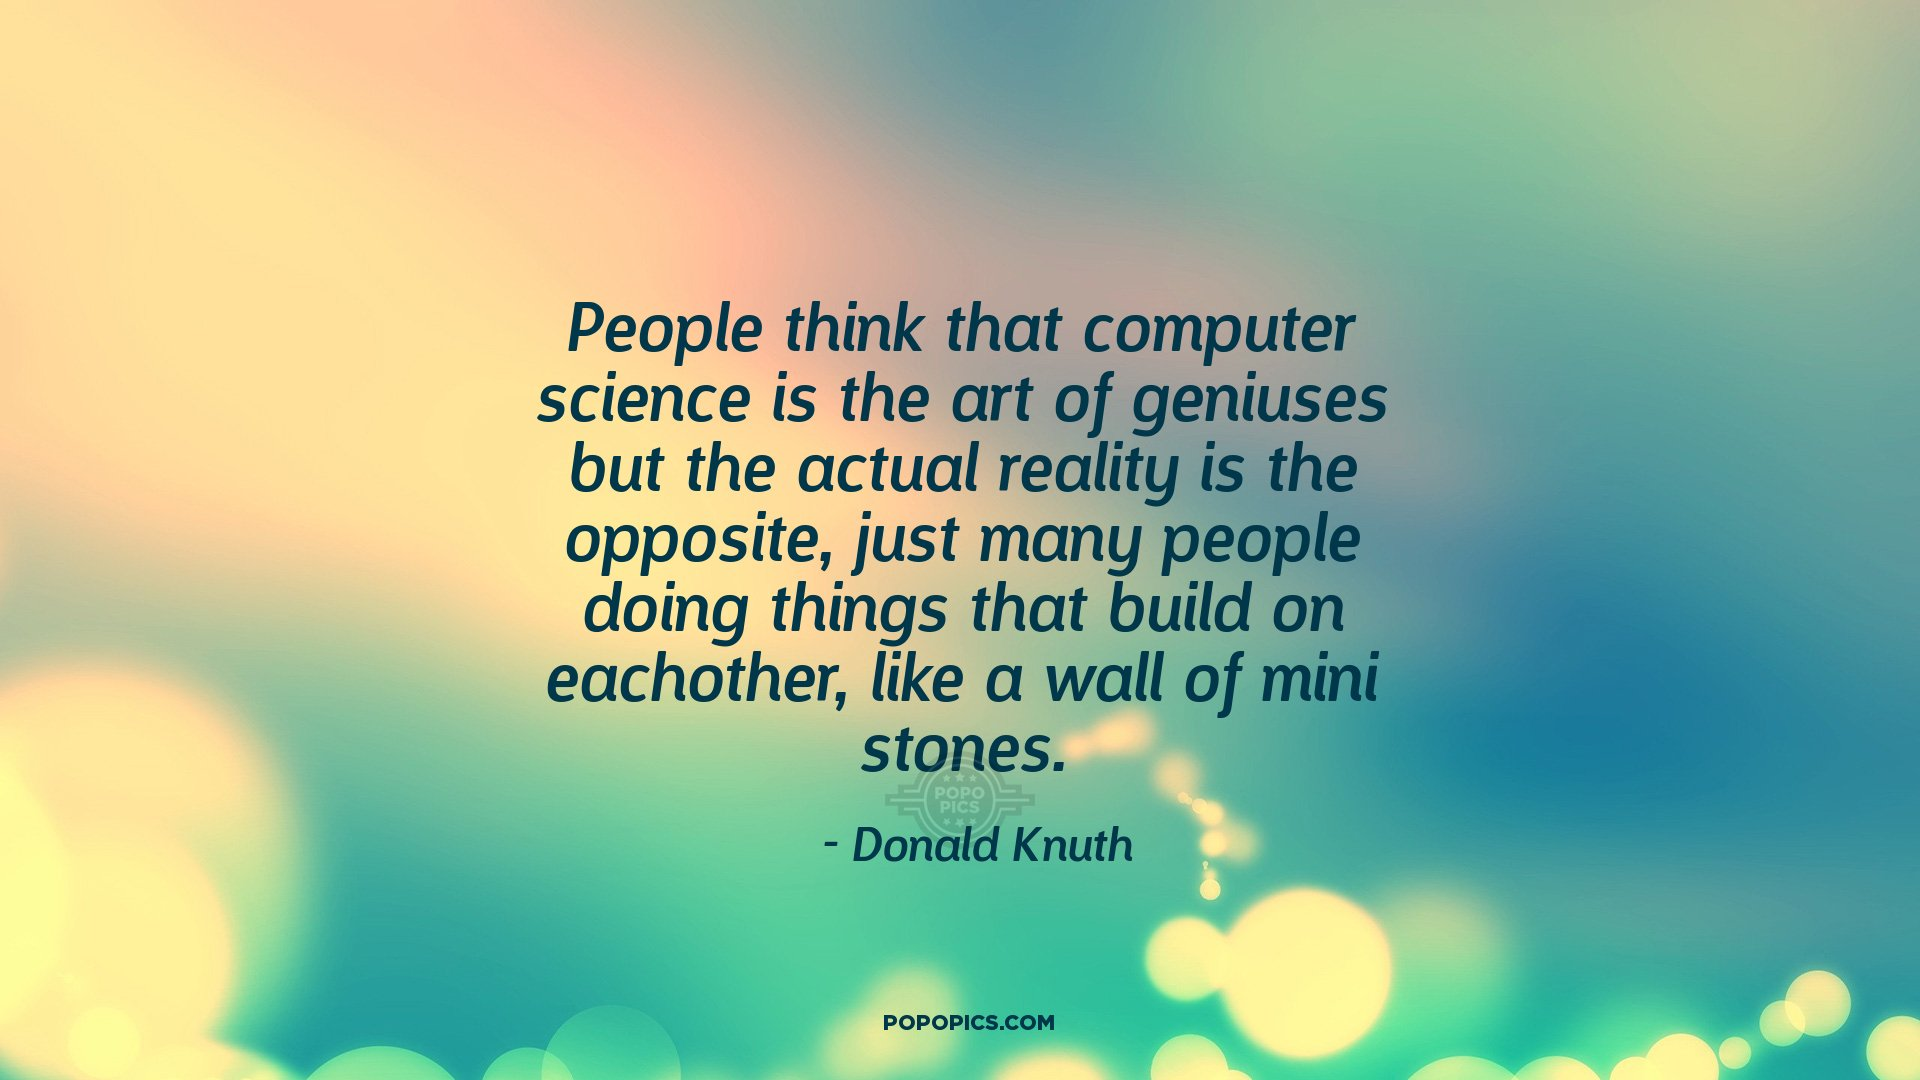 People Think That Computer Science Is The Art Of Geniuses